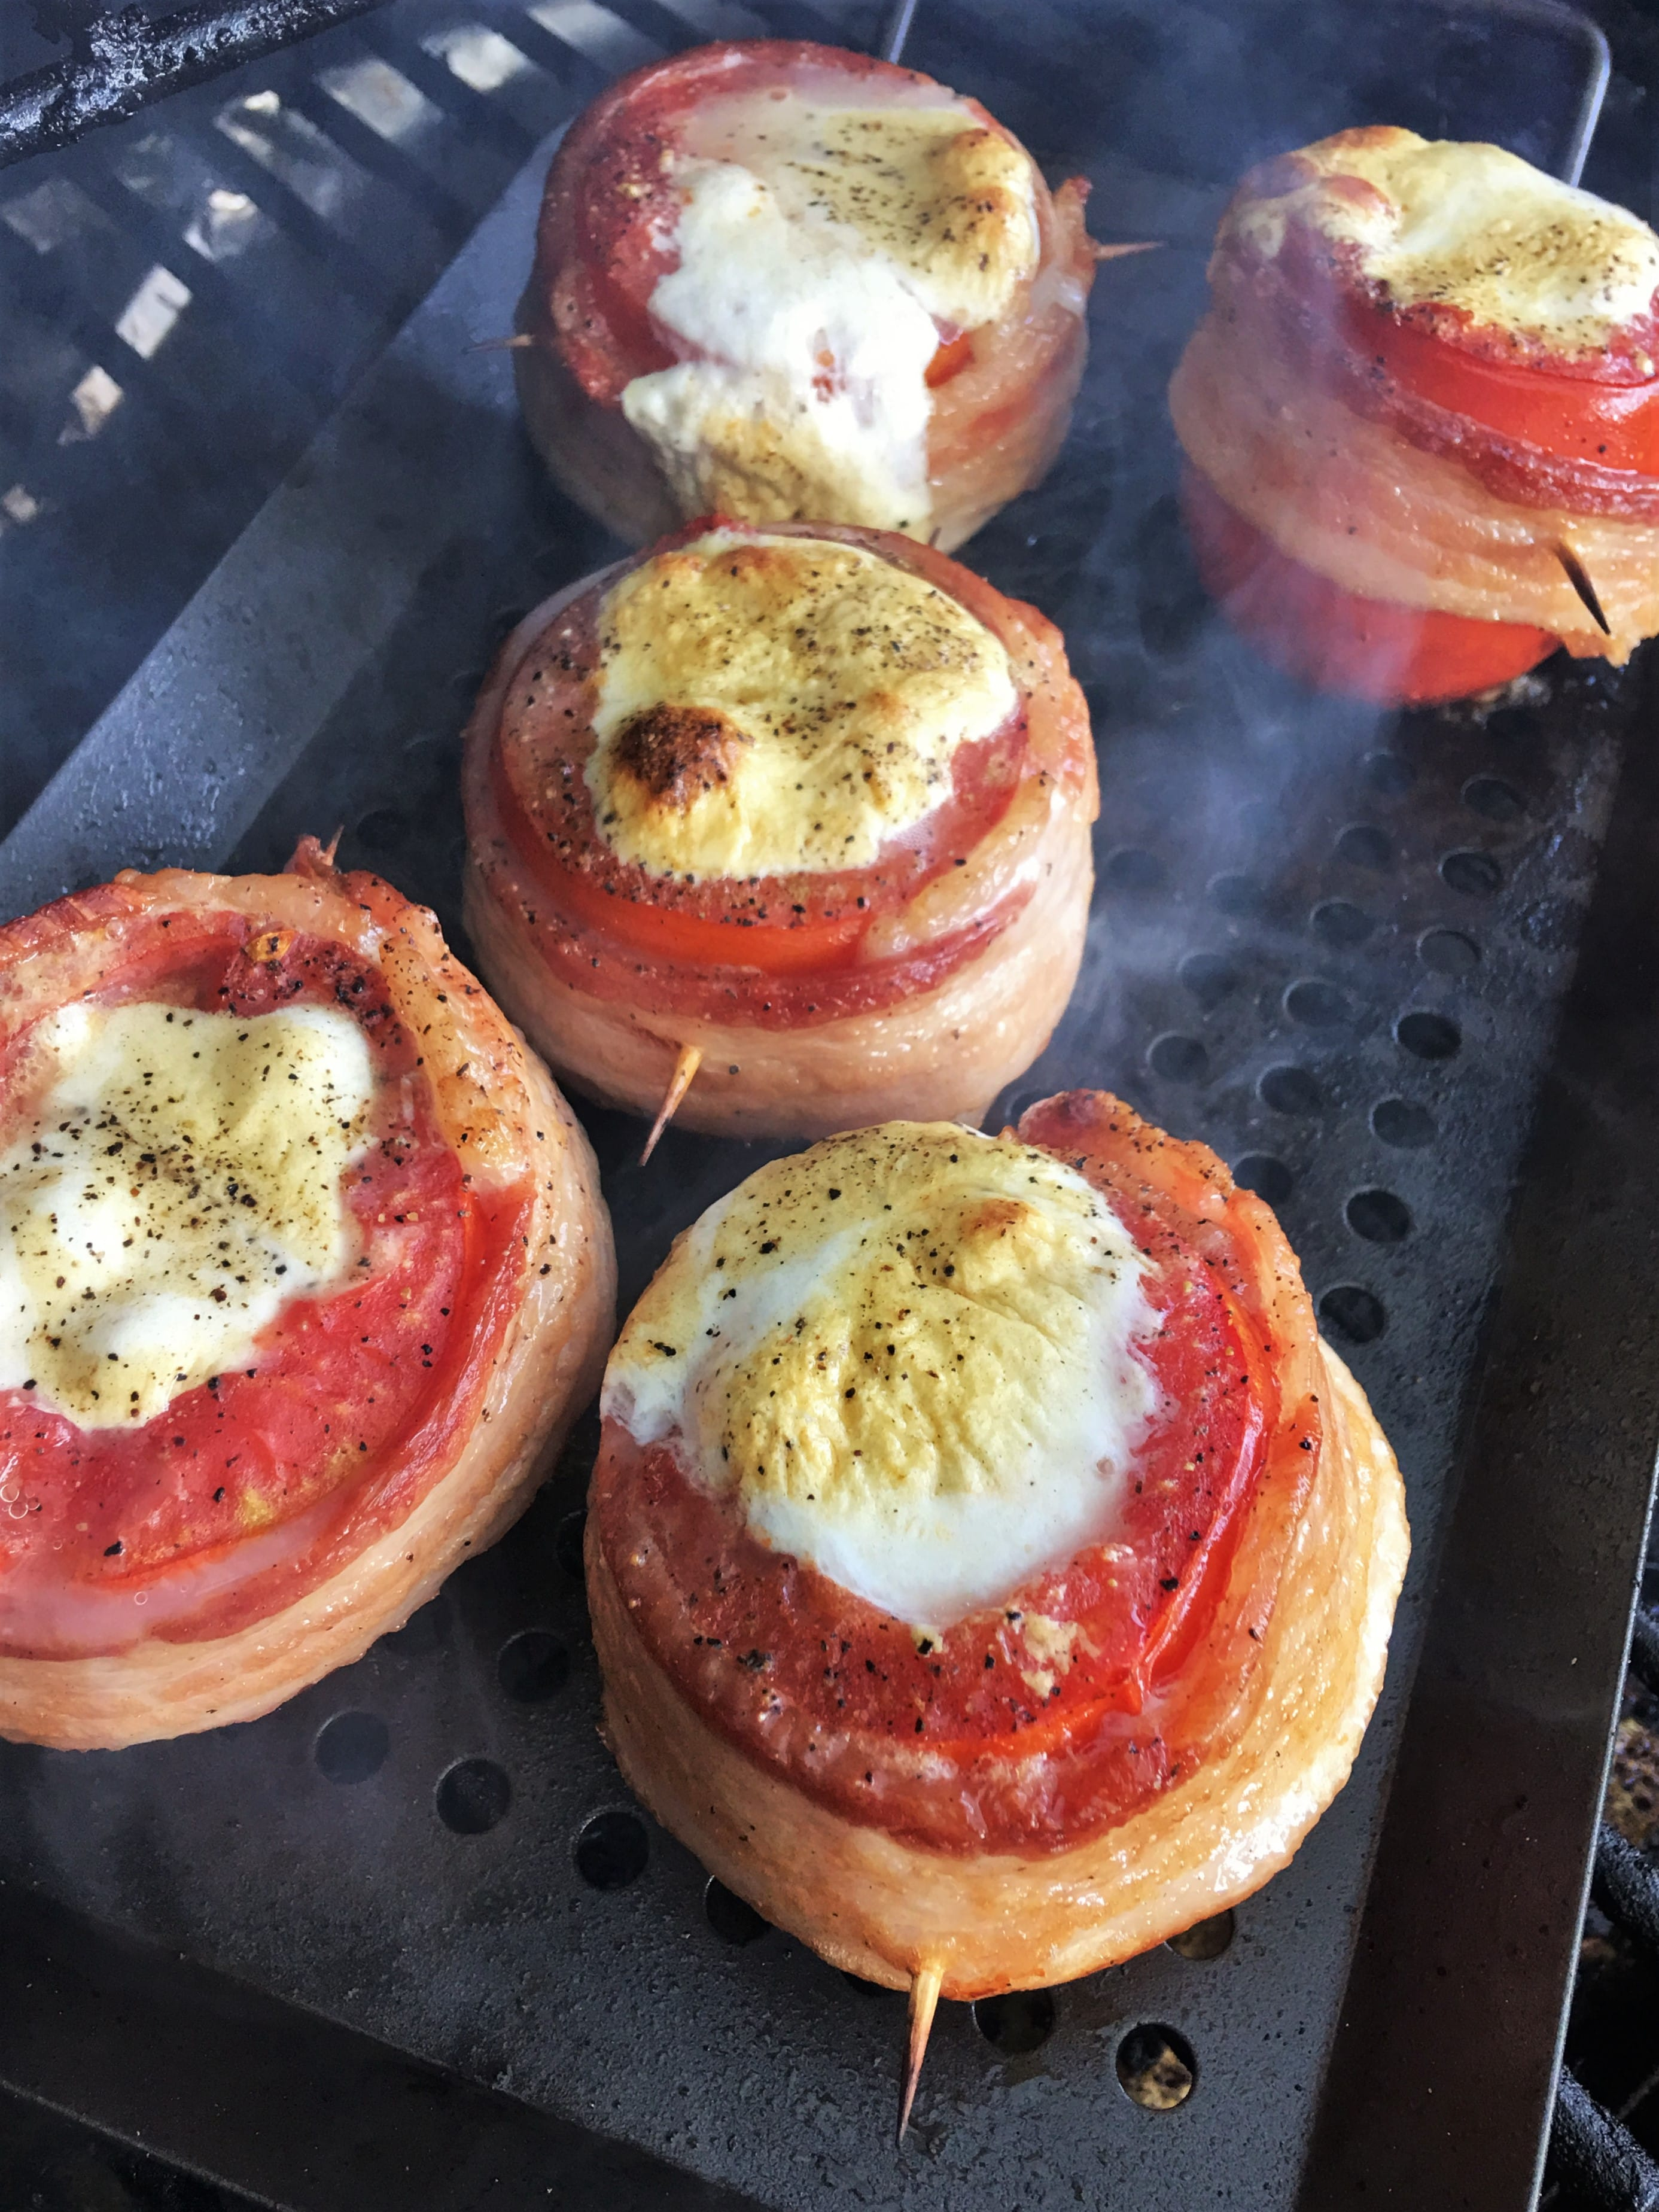 Grilled Stuffed Tomatoes on the grill